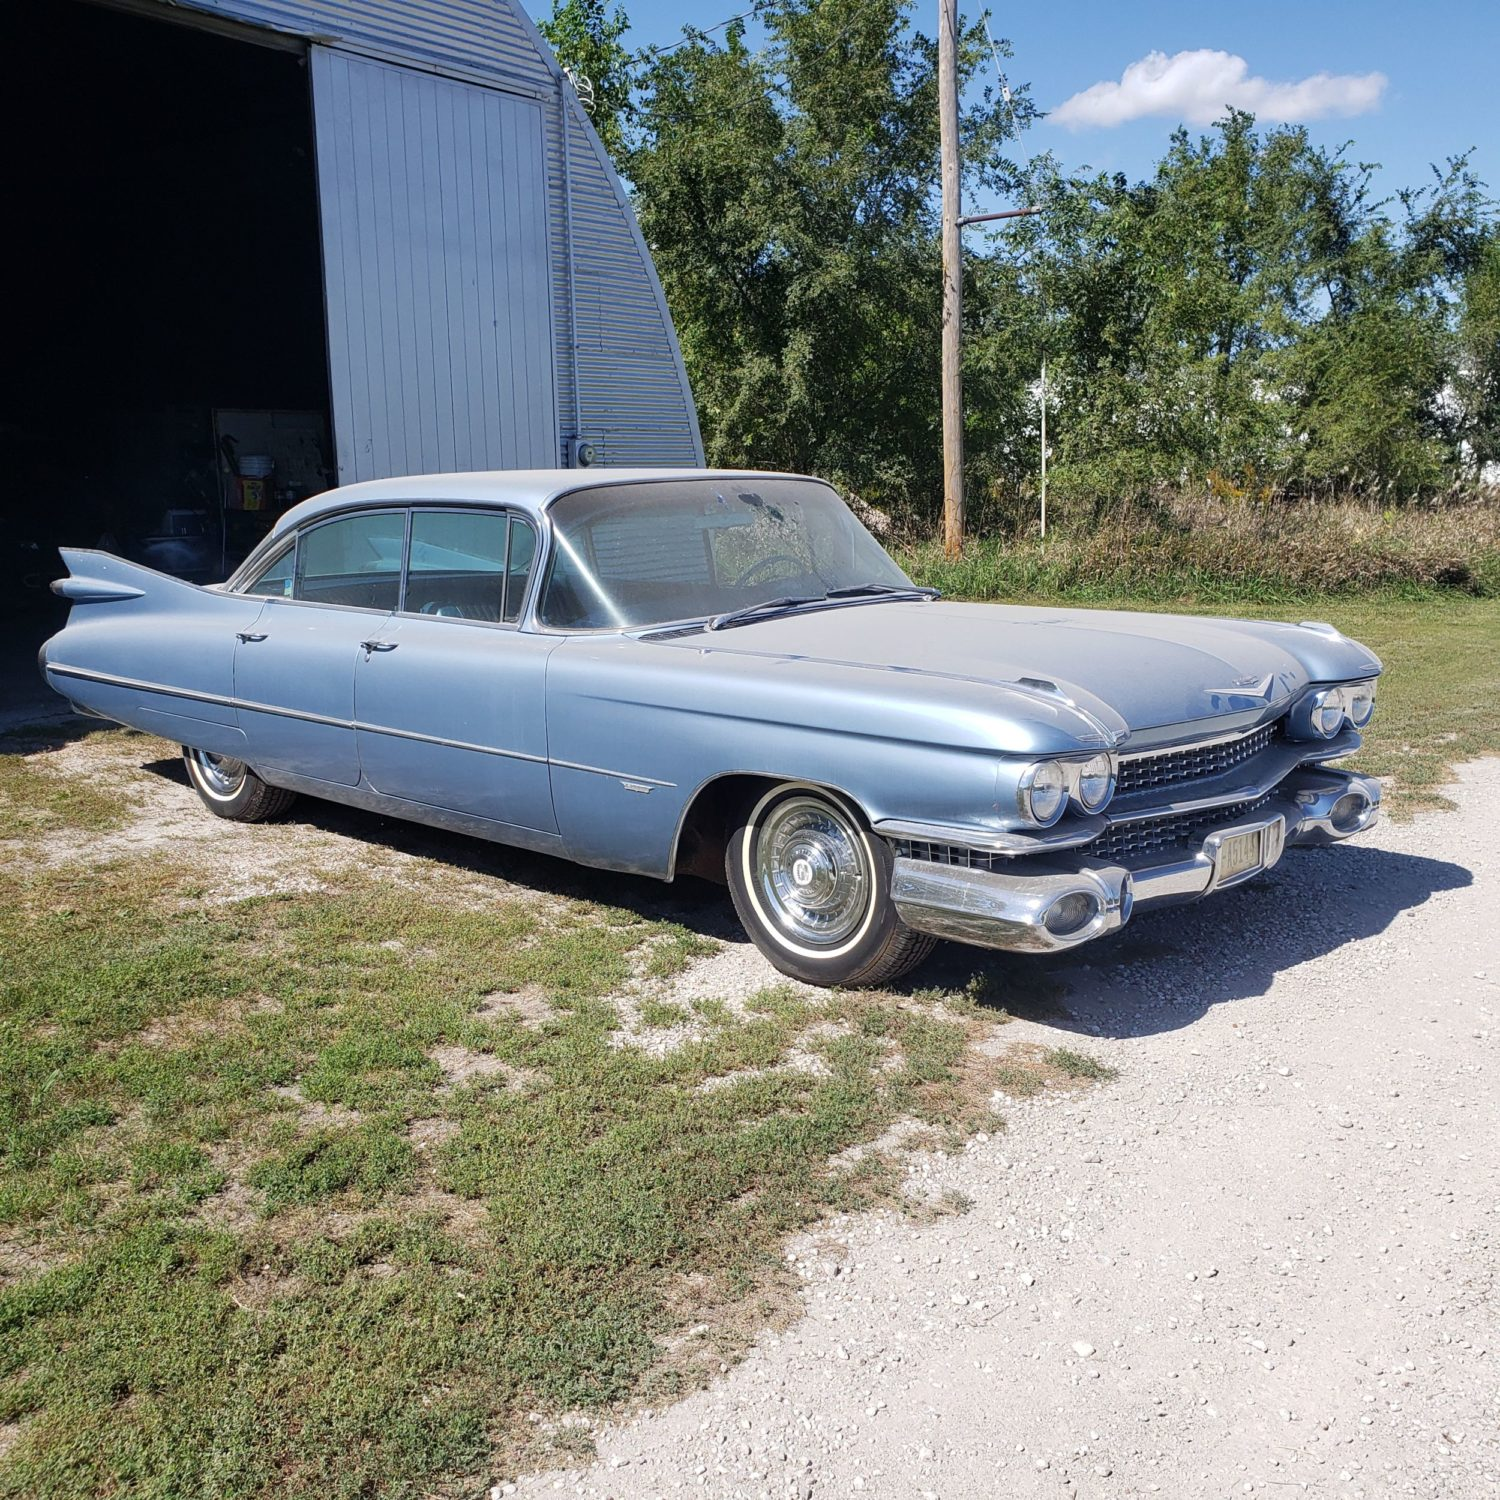 ONLINE ONLY! 1936 Cord, 1959 Cadillac & More Vintage Classic Cars! The John Agee Collection! - image 2